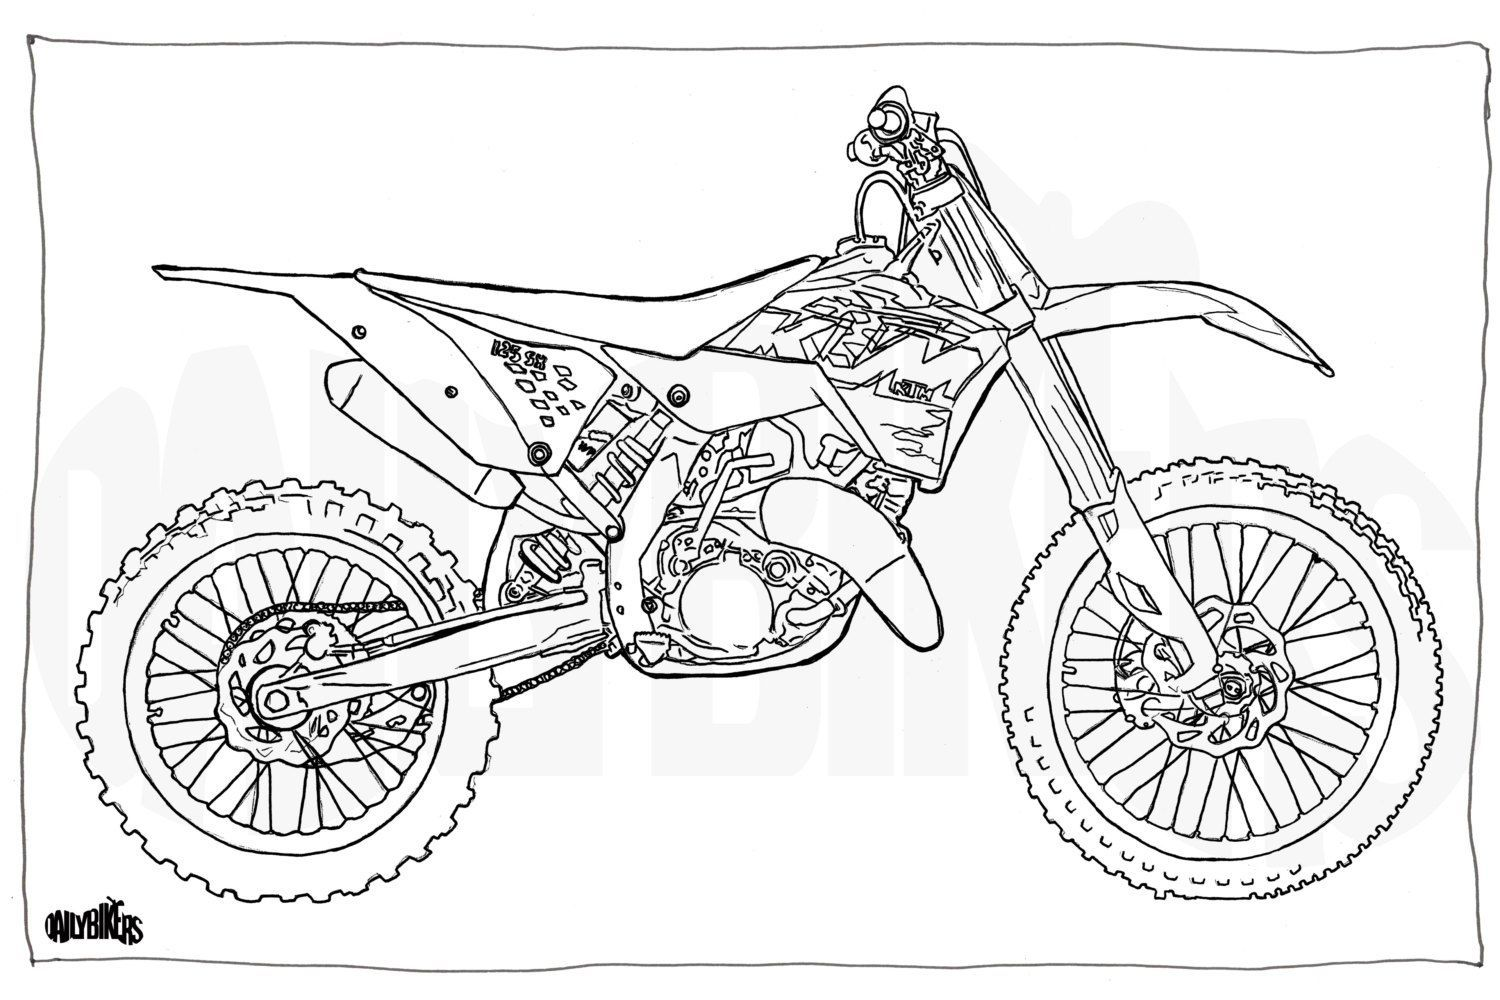 dirt bike coloring pages printable fierce rider dirt bike coloring dirtbikes free printable coloring dirt bike pages